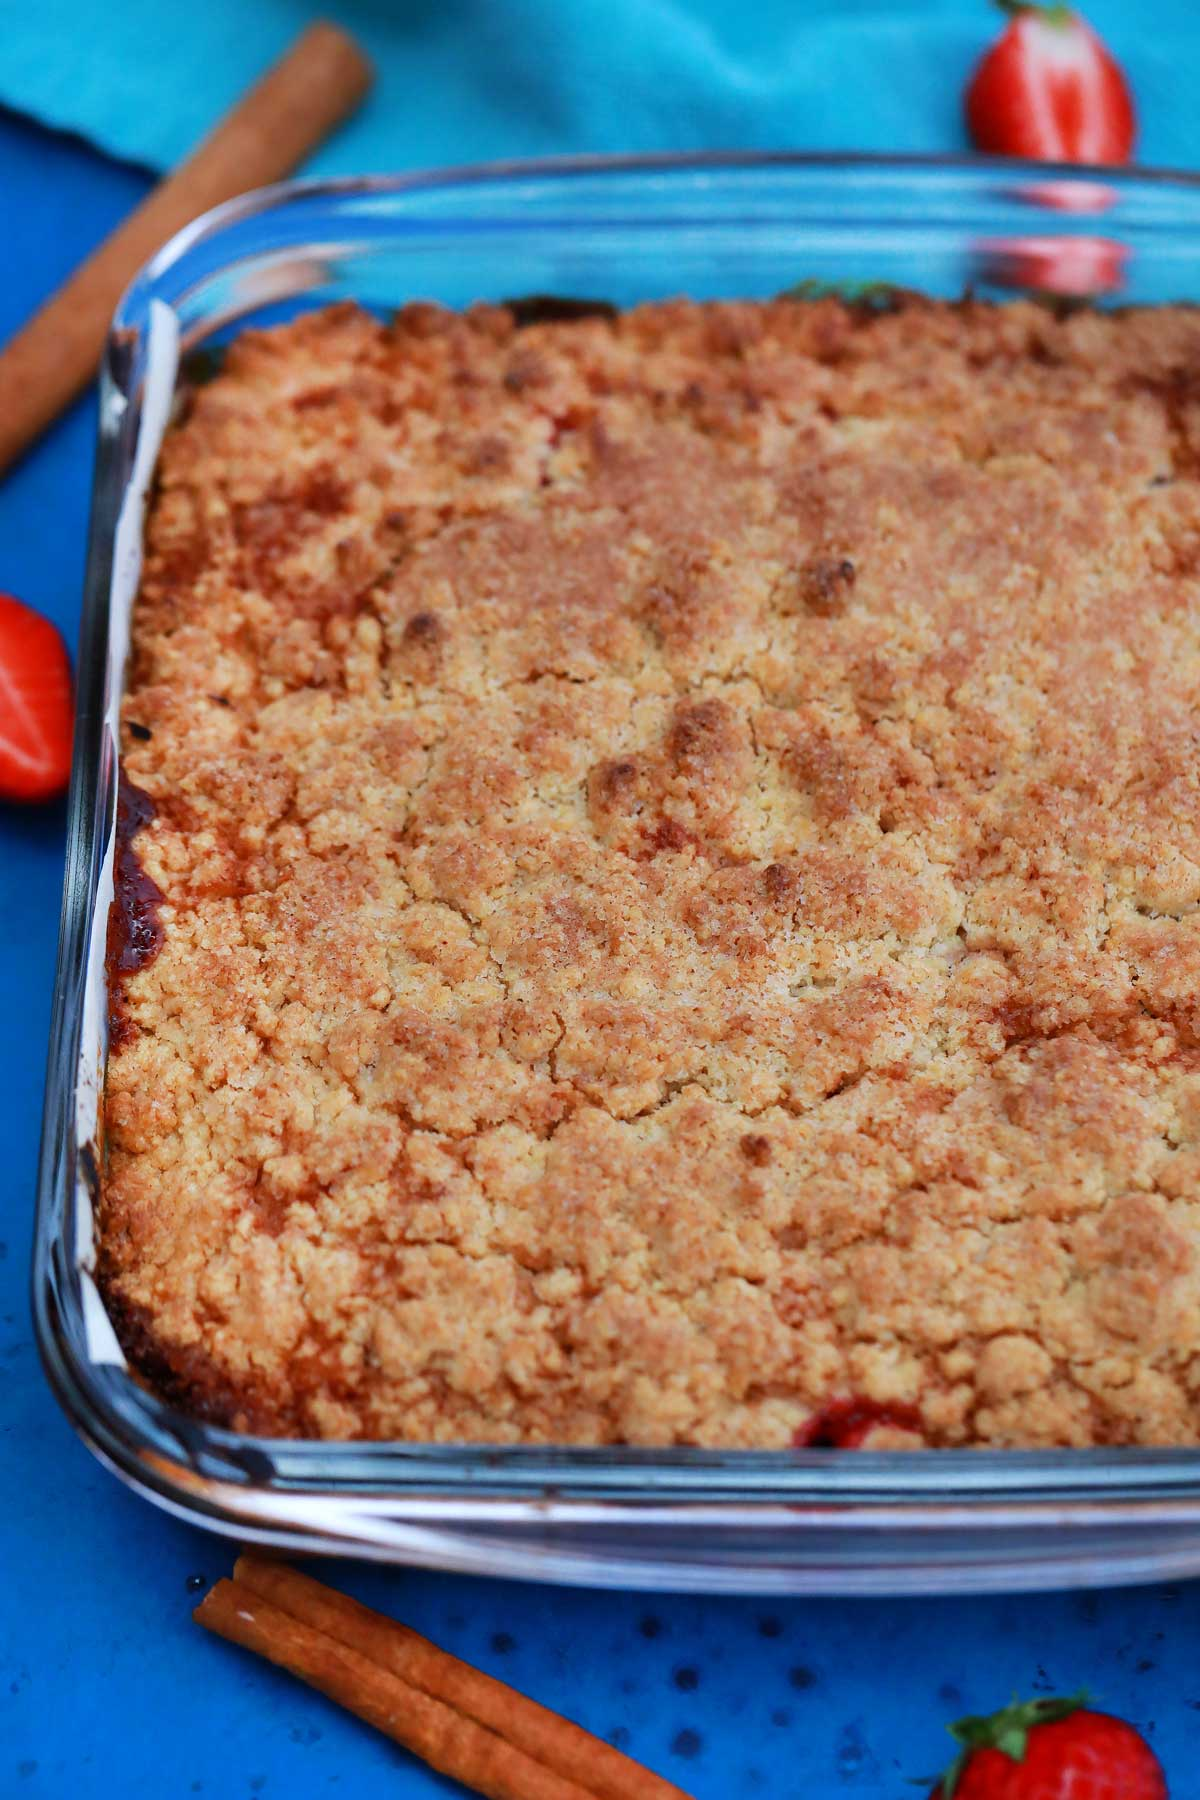 Baked strawberry bars in dish